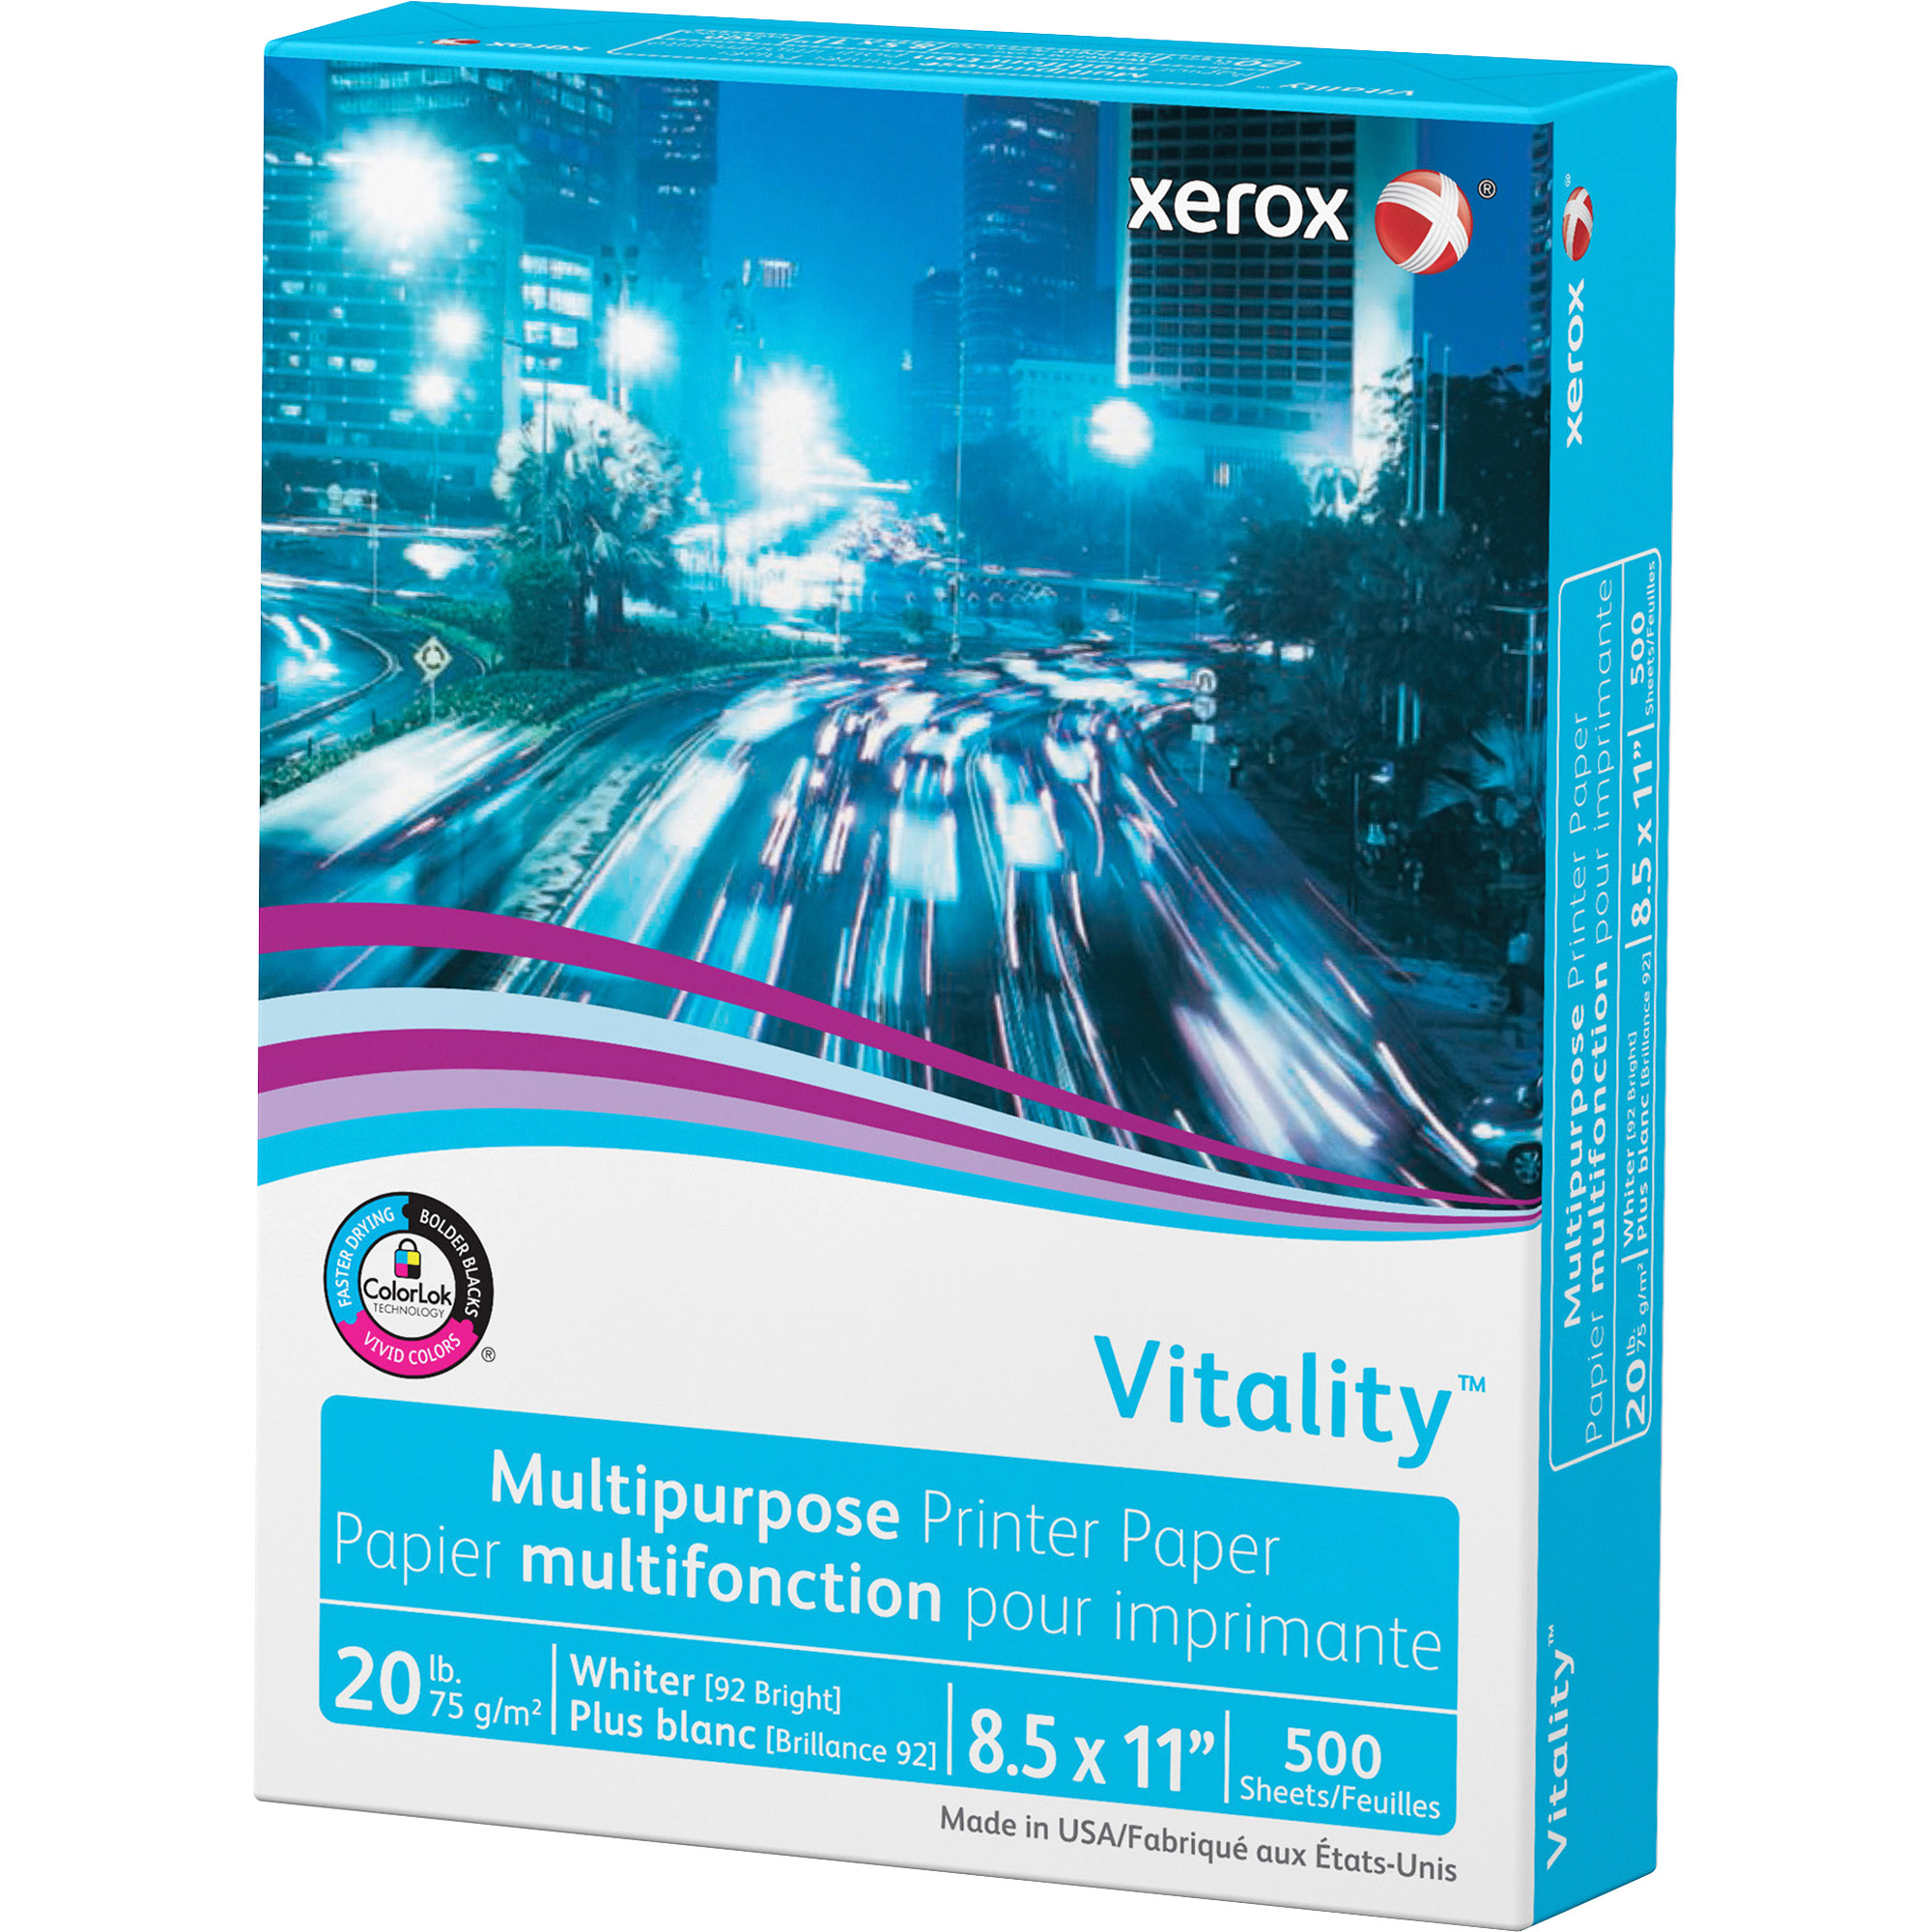 Xerox 3R02047RM Vitality Multipurpose Printer Paper